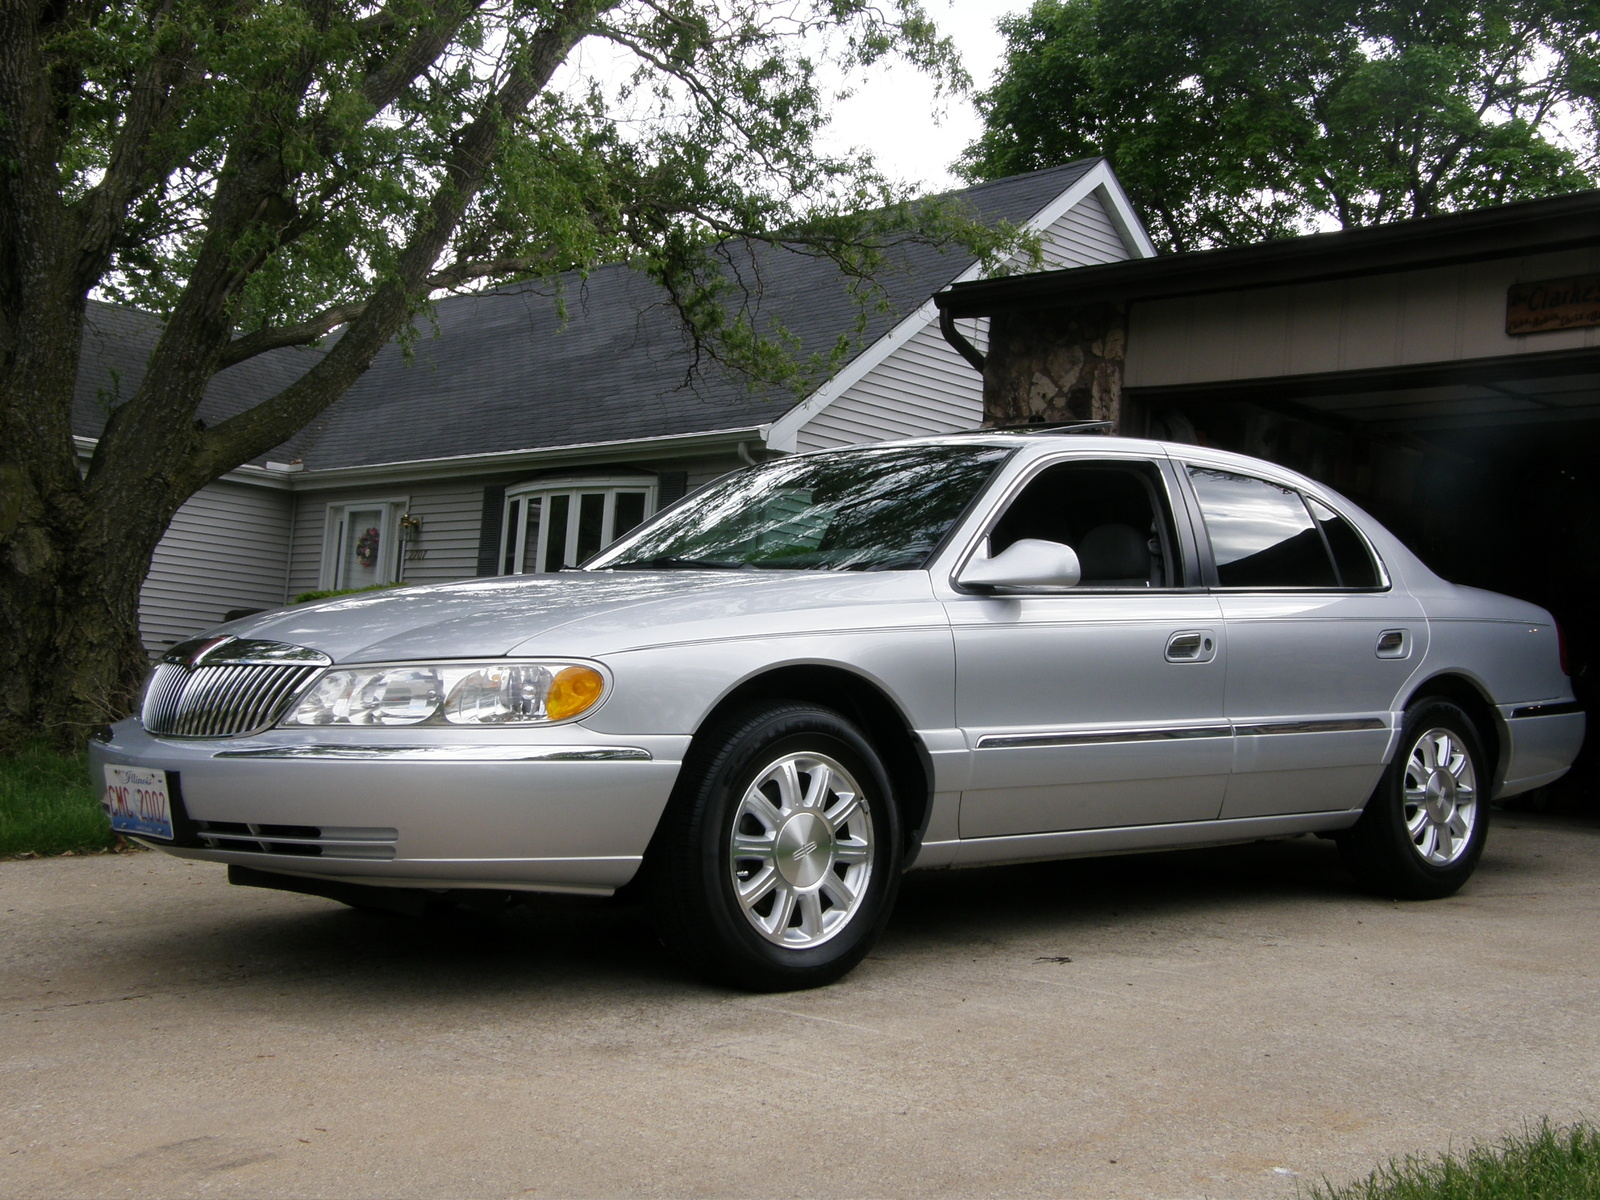 2001 Lincoln Continental 4 Dr STD Sedan picture